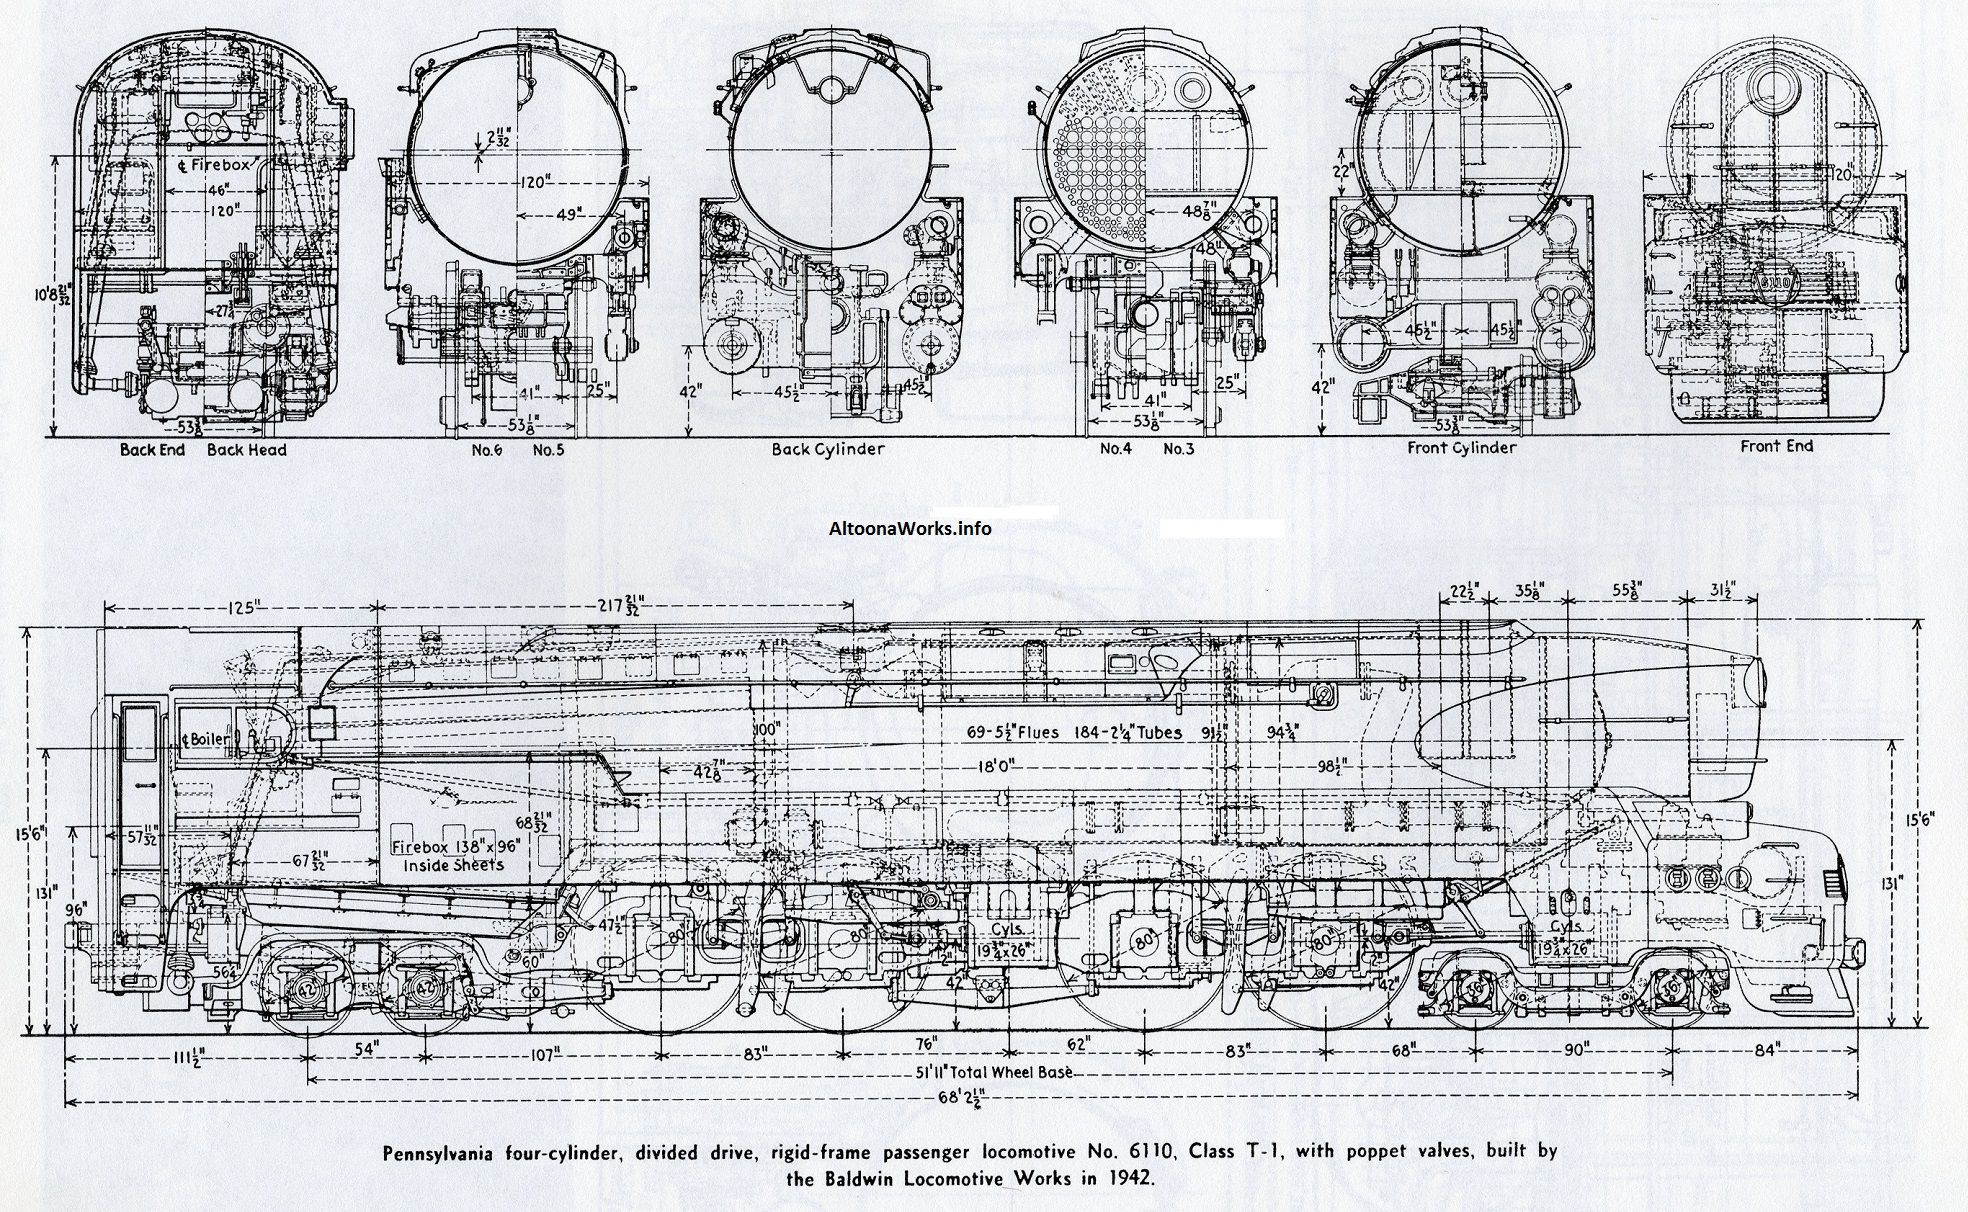 medium resolution of pennsylvania t 1 4 4 4 4 baldwin 1942 locomotive cutaways prr barge diagram